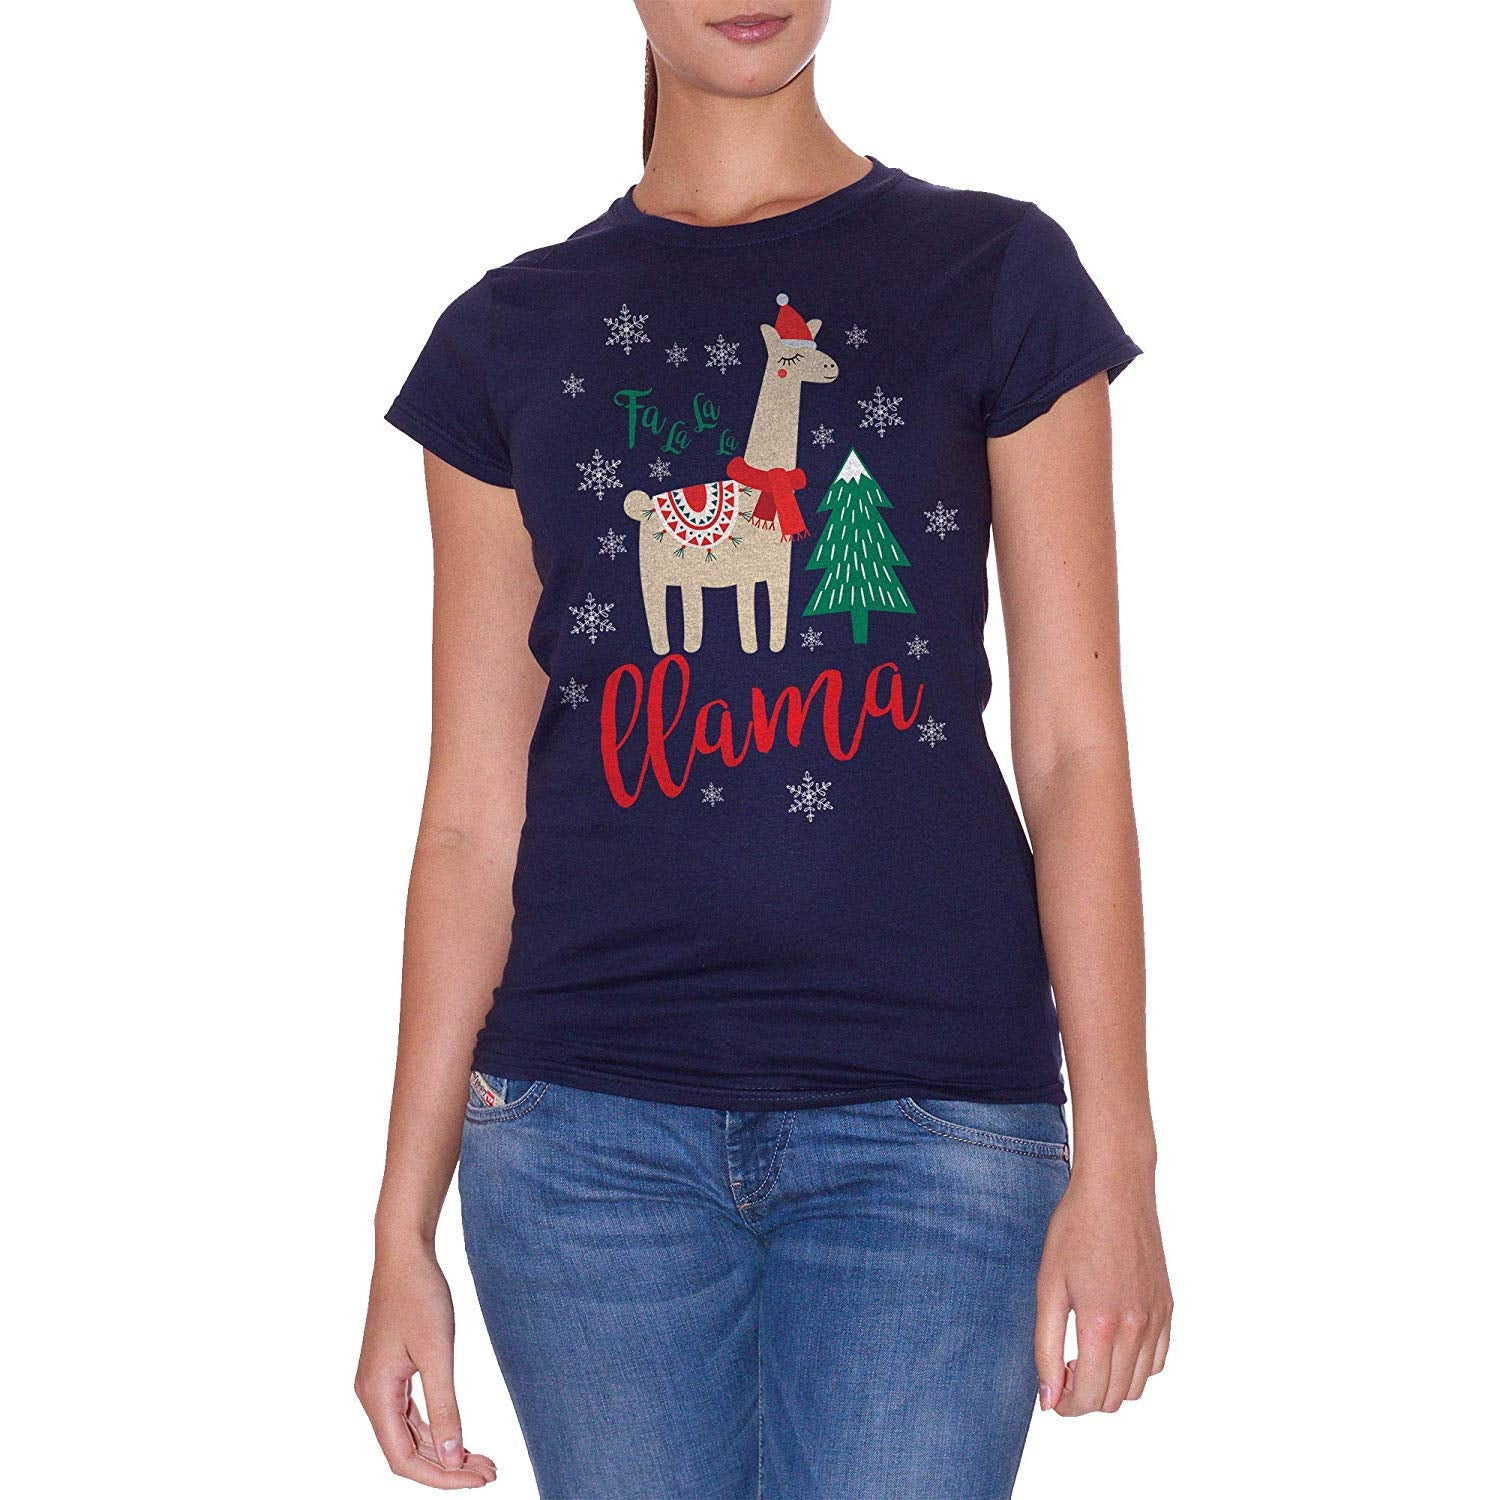 T-Shirt Fa La La La Llama Xmas Christmas Natale - Film Choose ur Color - CUC #chooseurcolor